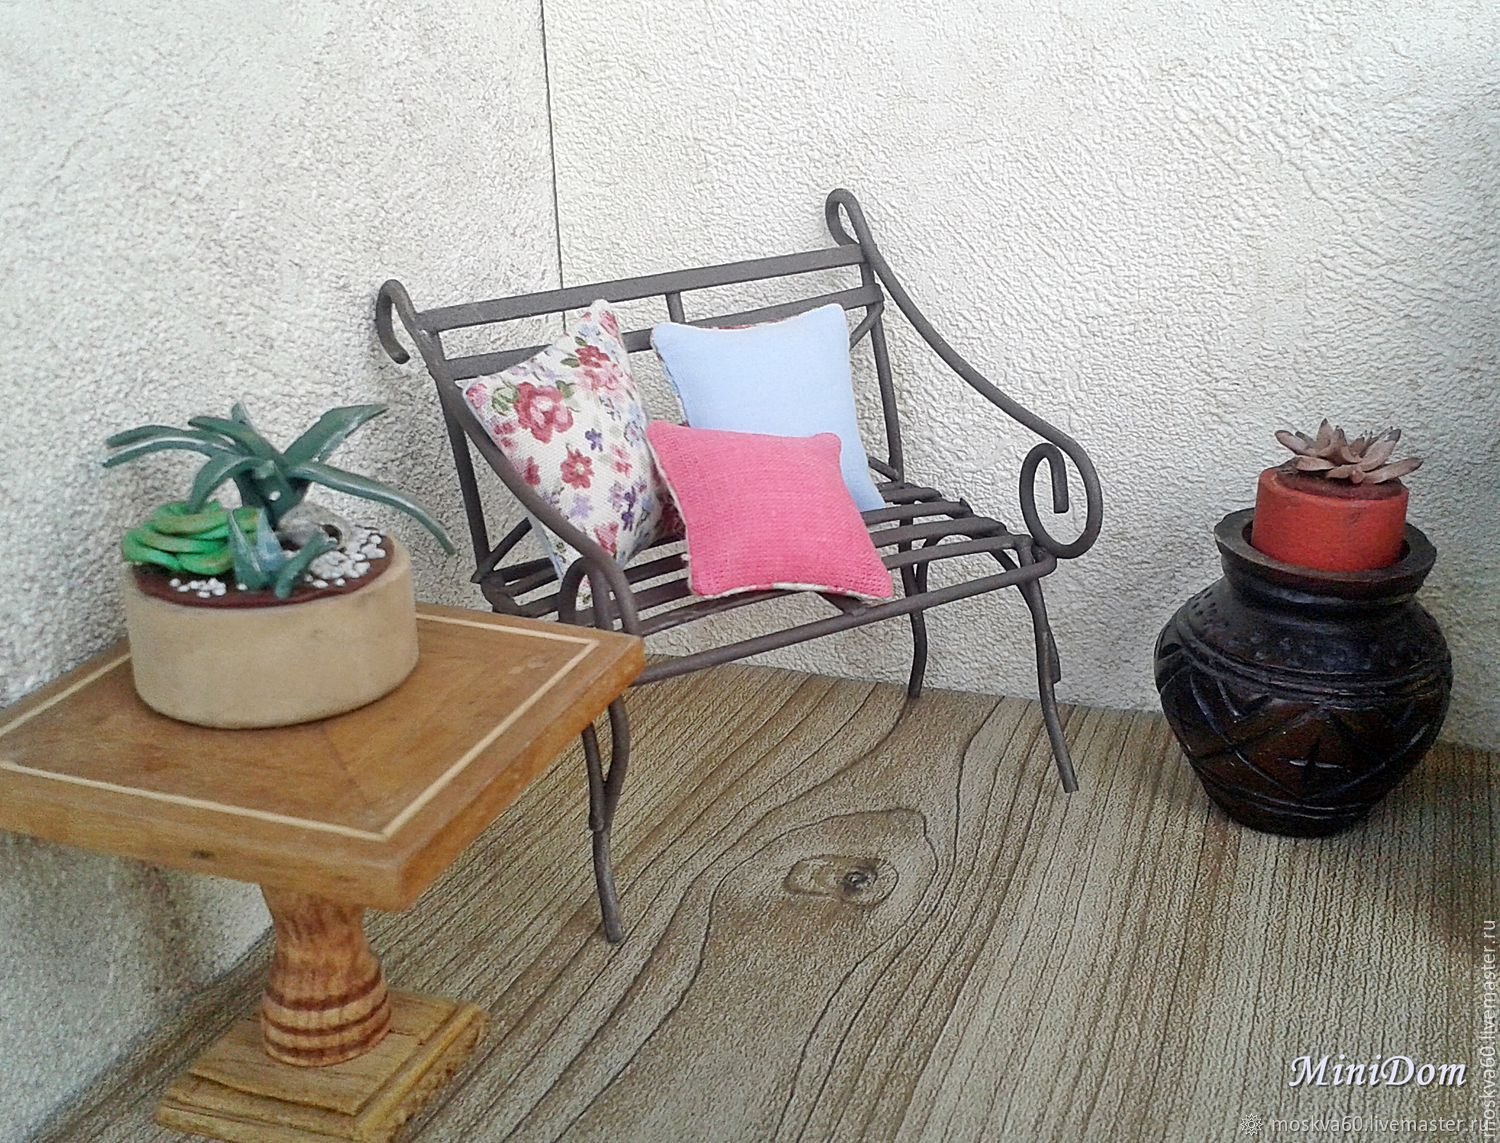 Pillows For Dollhouse Miniatures Dollhouse Accessories Shop Online On Livemaster With Shipping Ca96xcom Moscow